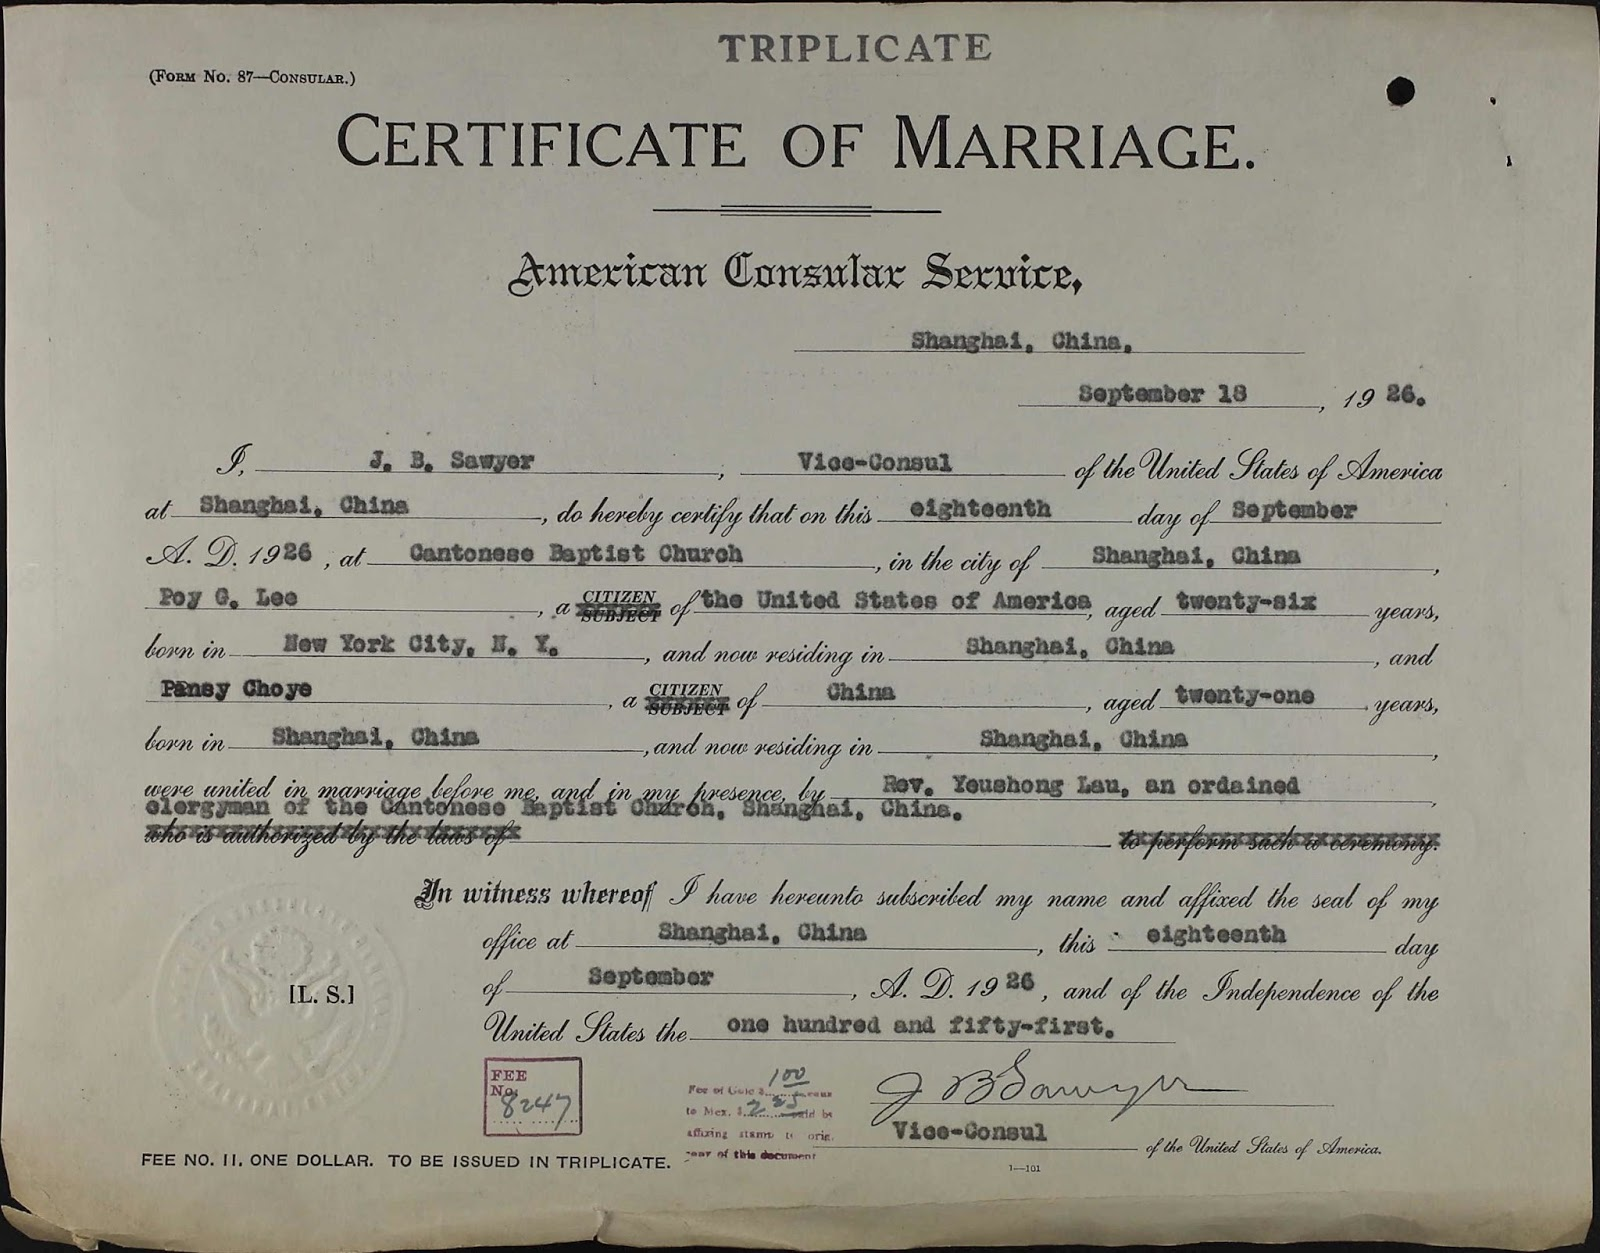 Sample marriage certificate new york state images certificate sample marriage certificate new york state choice image sample marriage certificate new york state image collections yadclub Choice Image